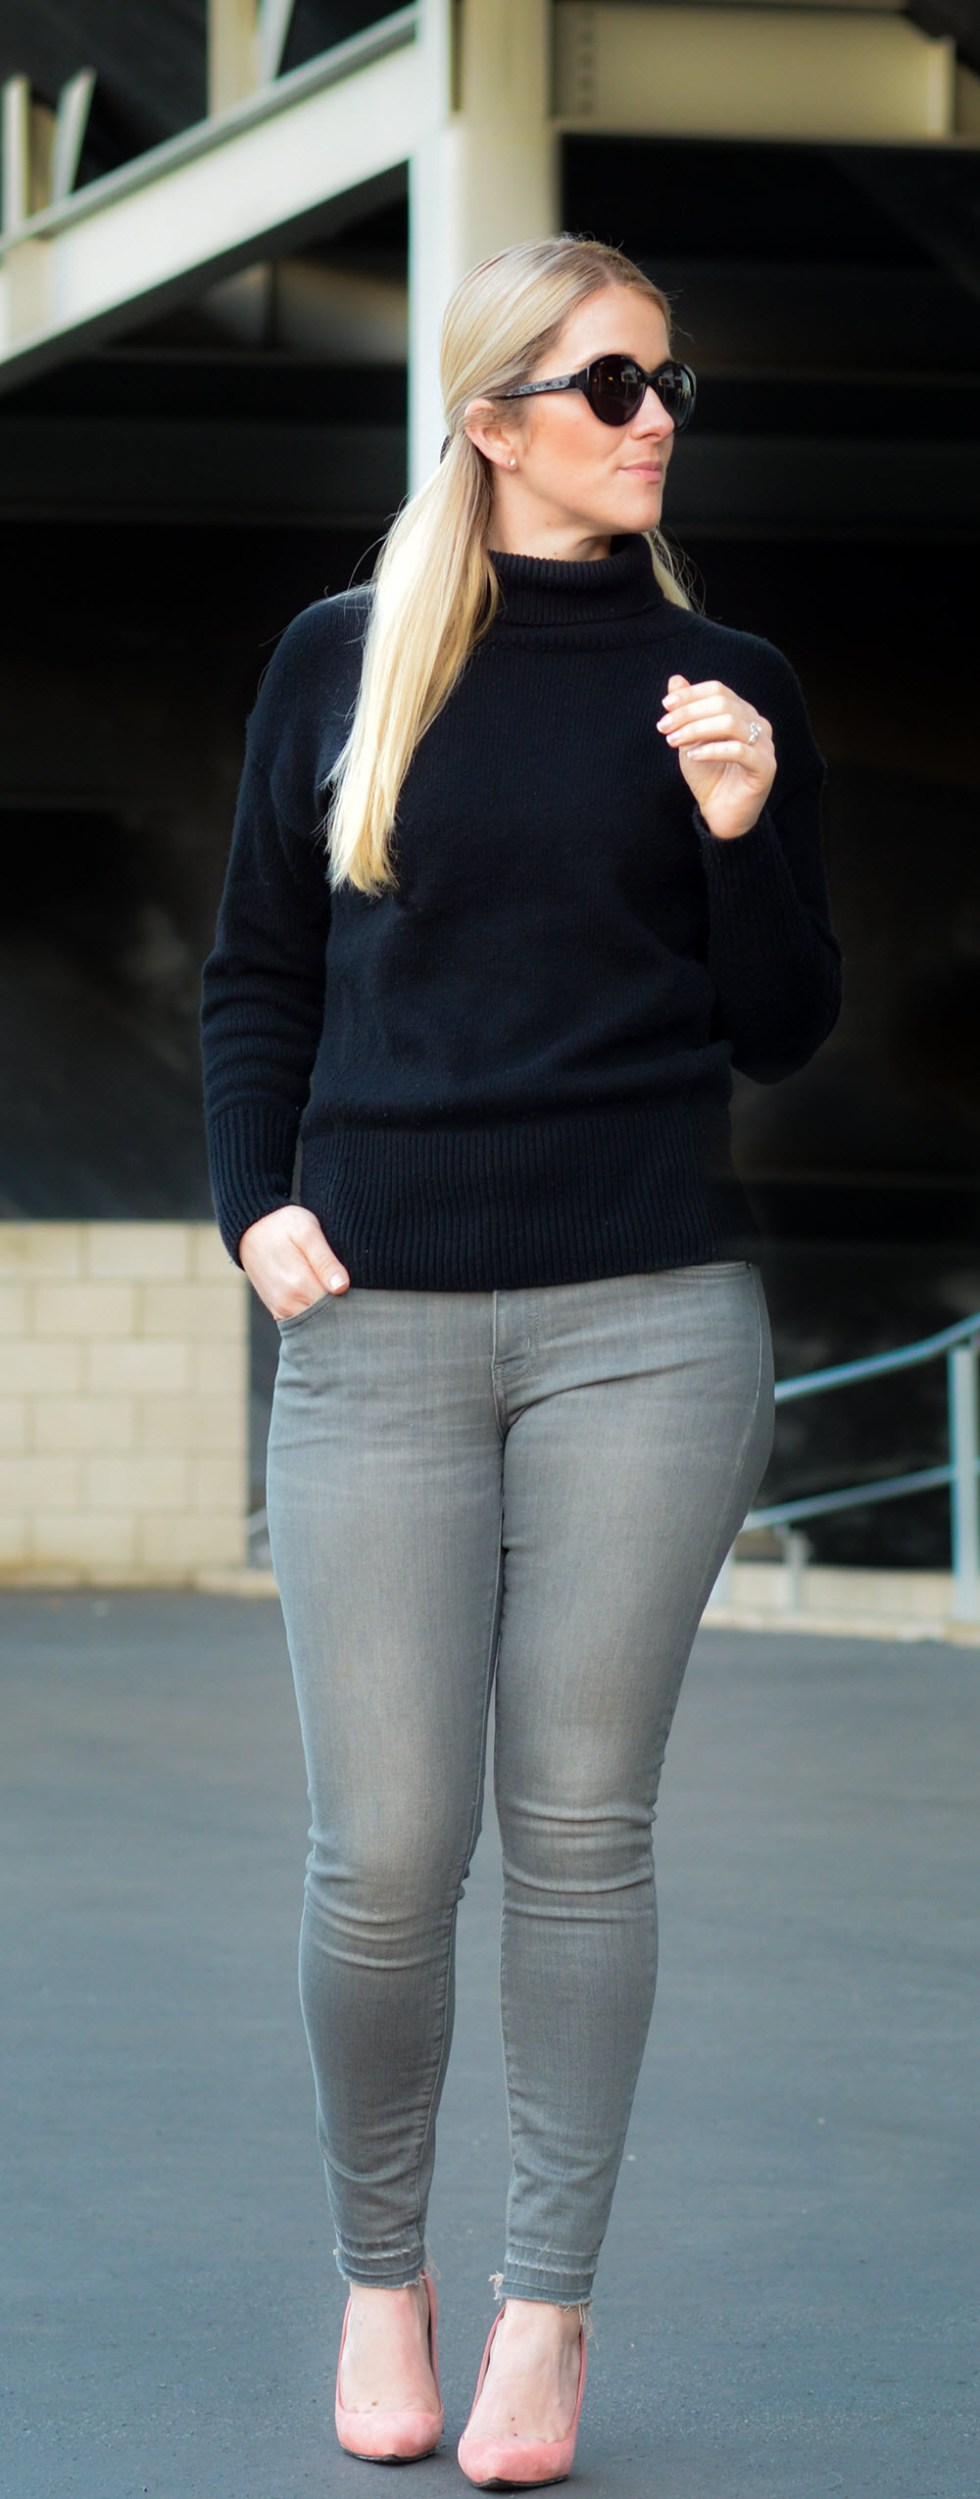 Black Turtleneck Outfit w. Grey Skinny Jeans and heels. A great casual Valentine's Day outfit.